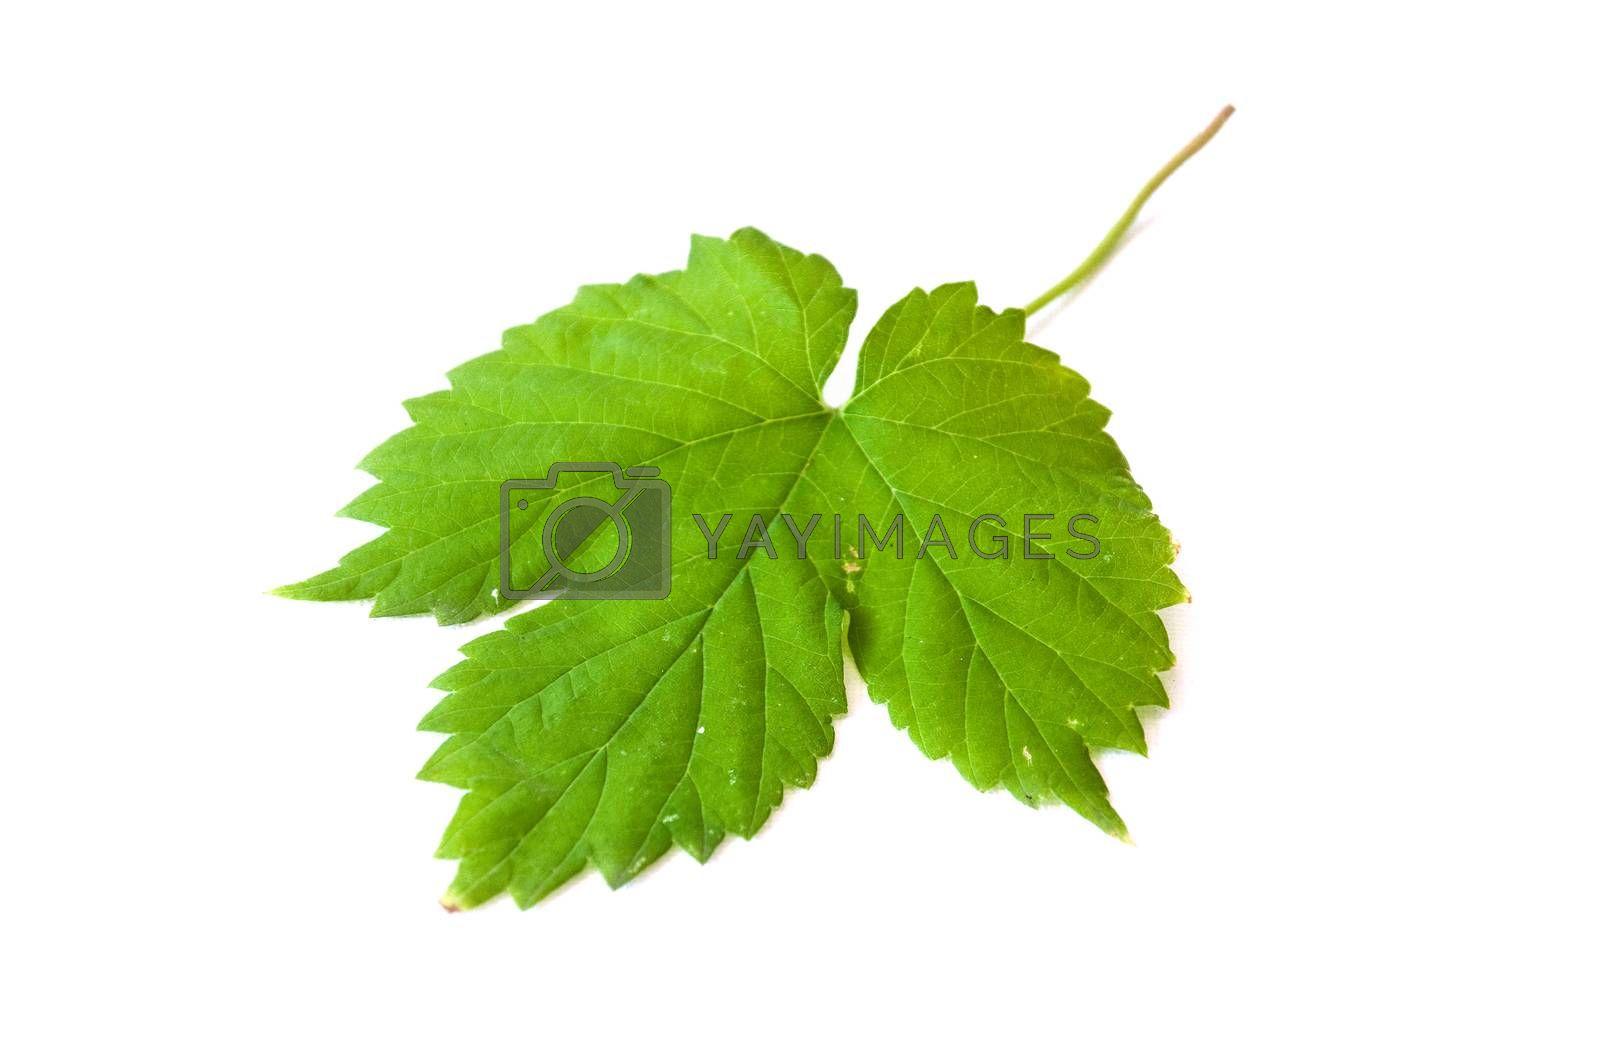 Royalty free image of Isolated leaf of vine  on white background by NeydtStock